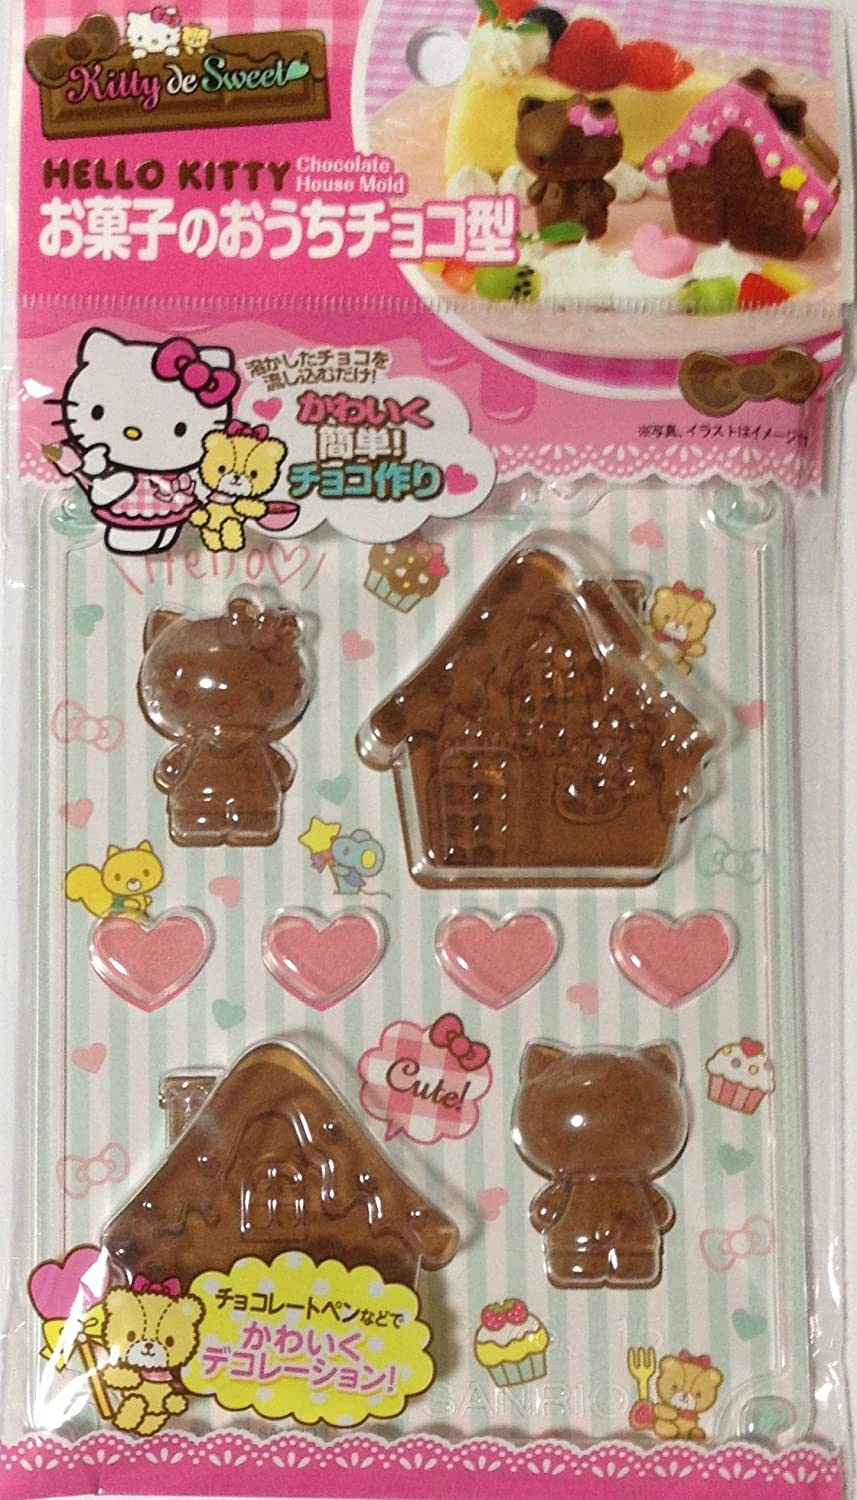 Amazon.com: Sanrio Hello Kitty Chocolate Candy Cookie Decoration Making Mold 8 Type Handmade Kit Kitchen (House): Kitchen & Dining